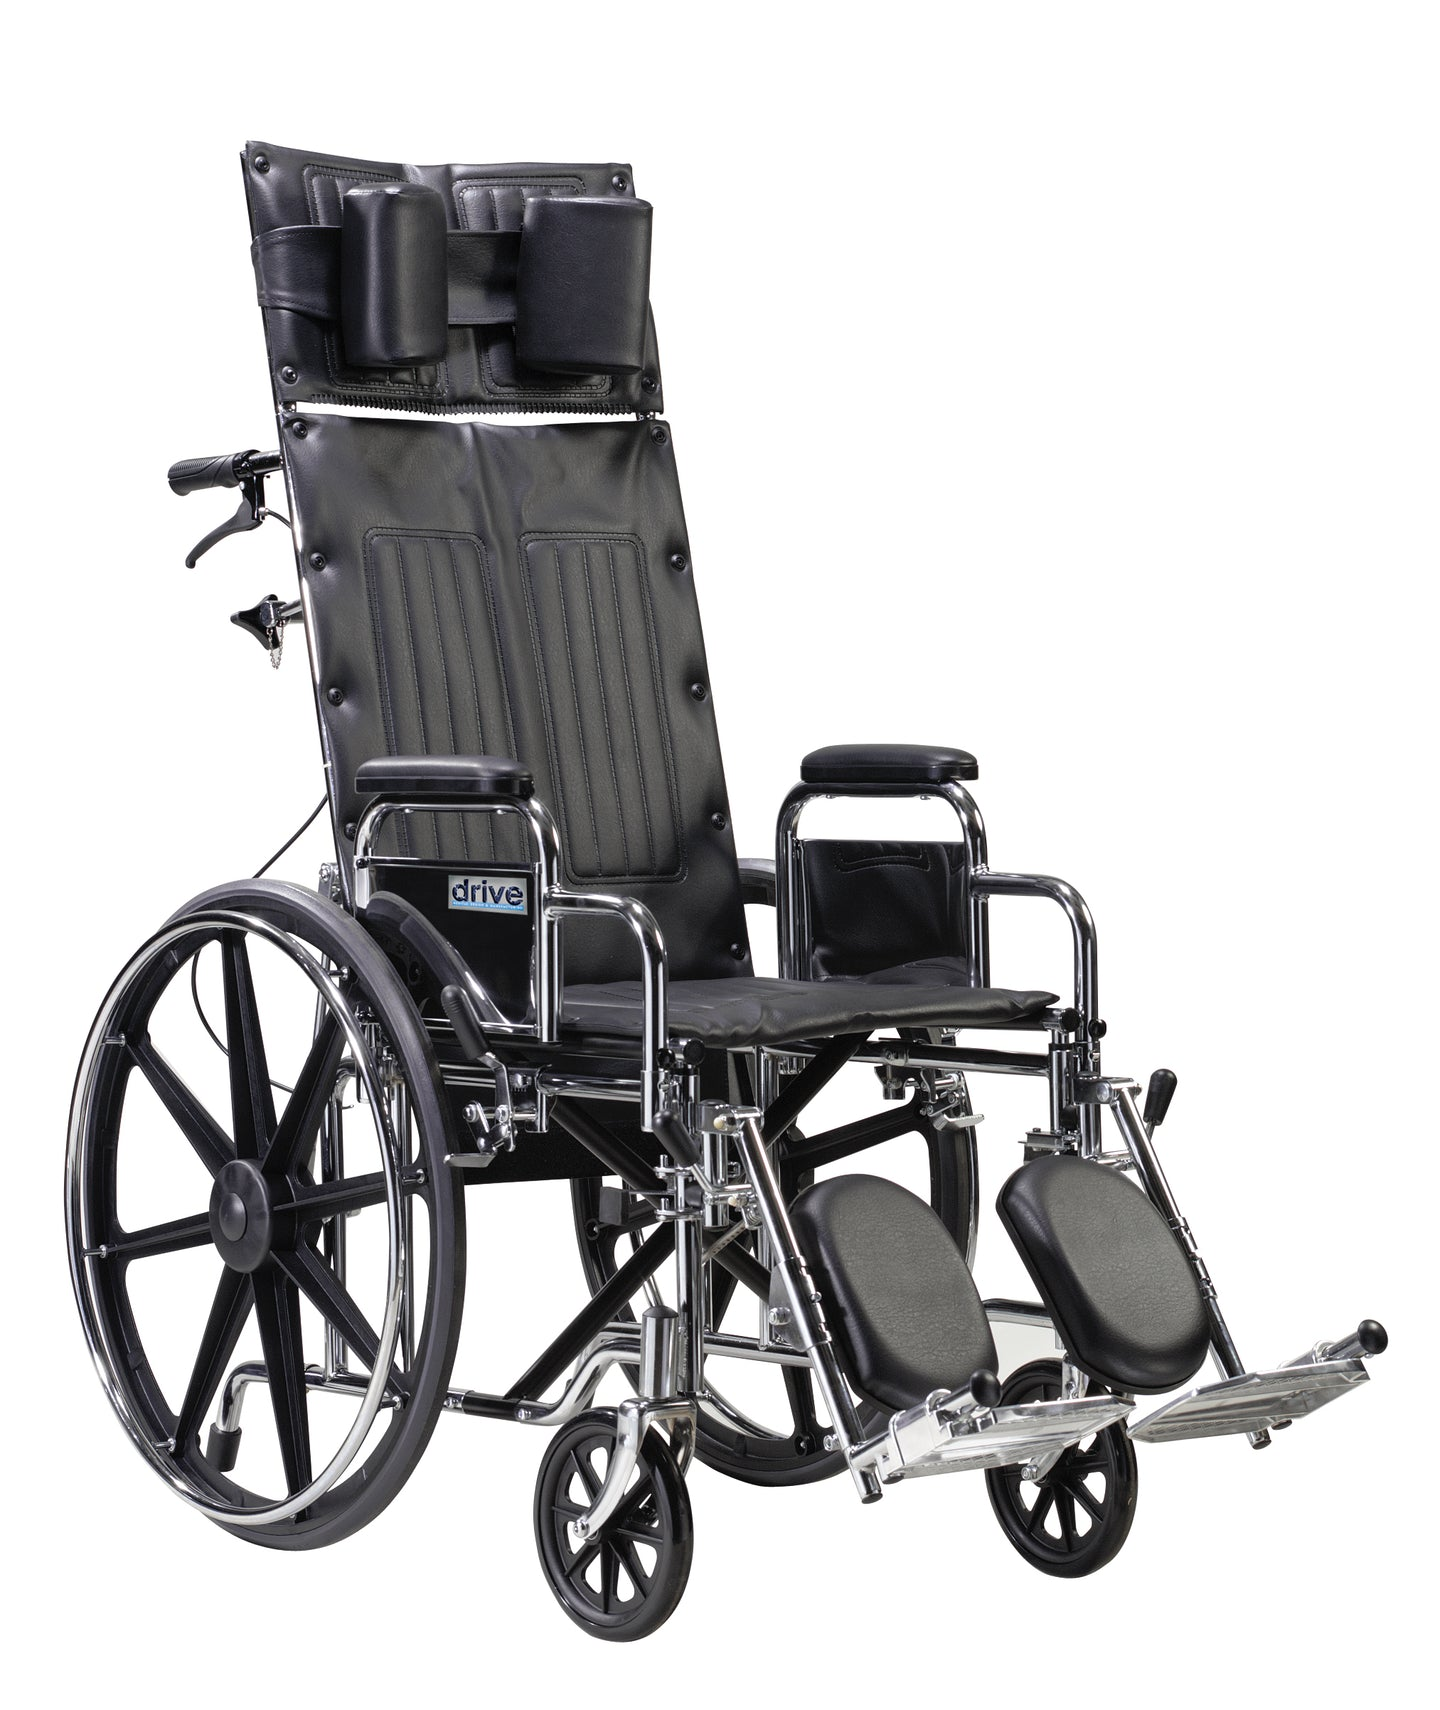 Drive Sentra Reclining Wheelchair- Detachable Desk Arms- 22